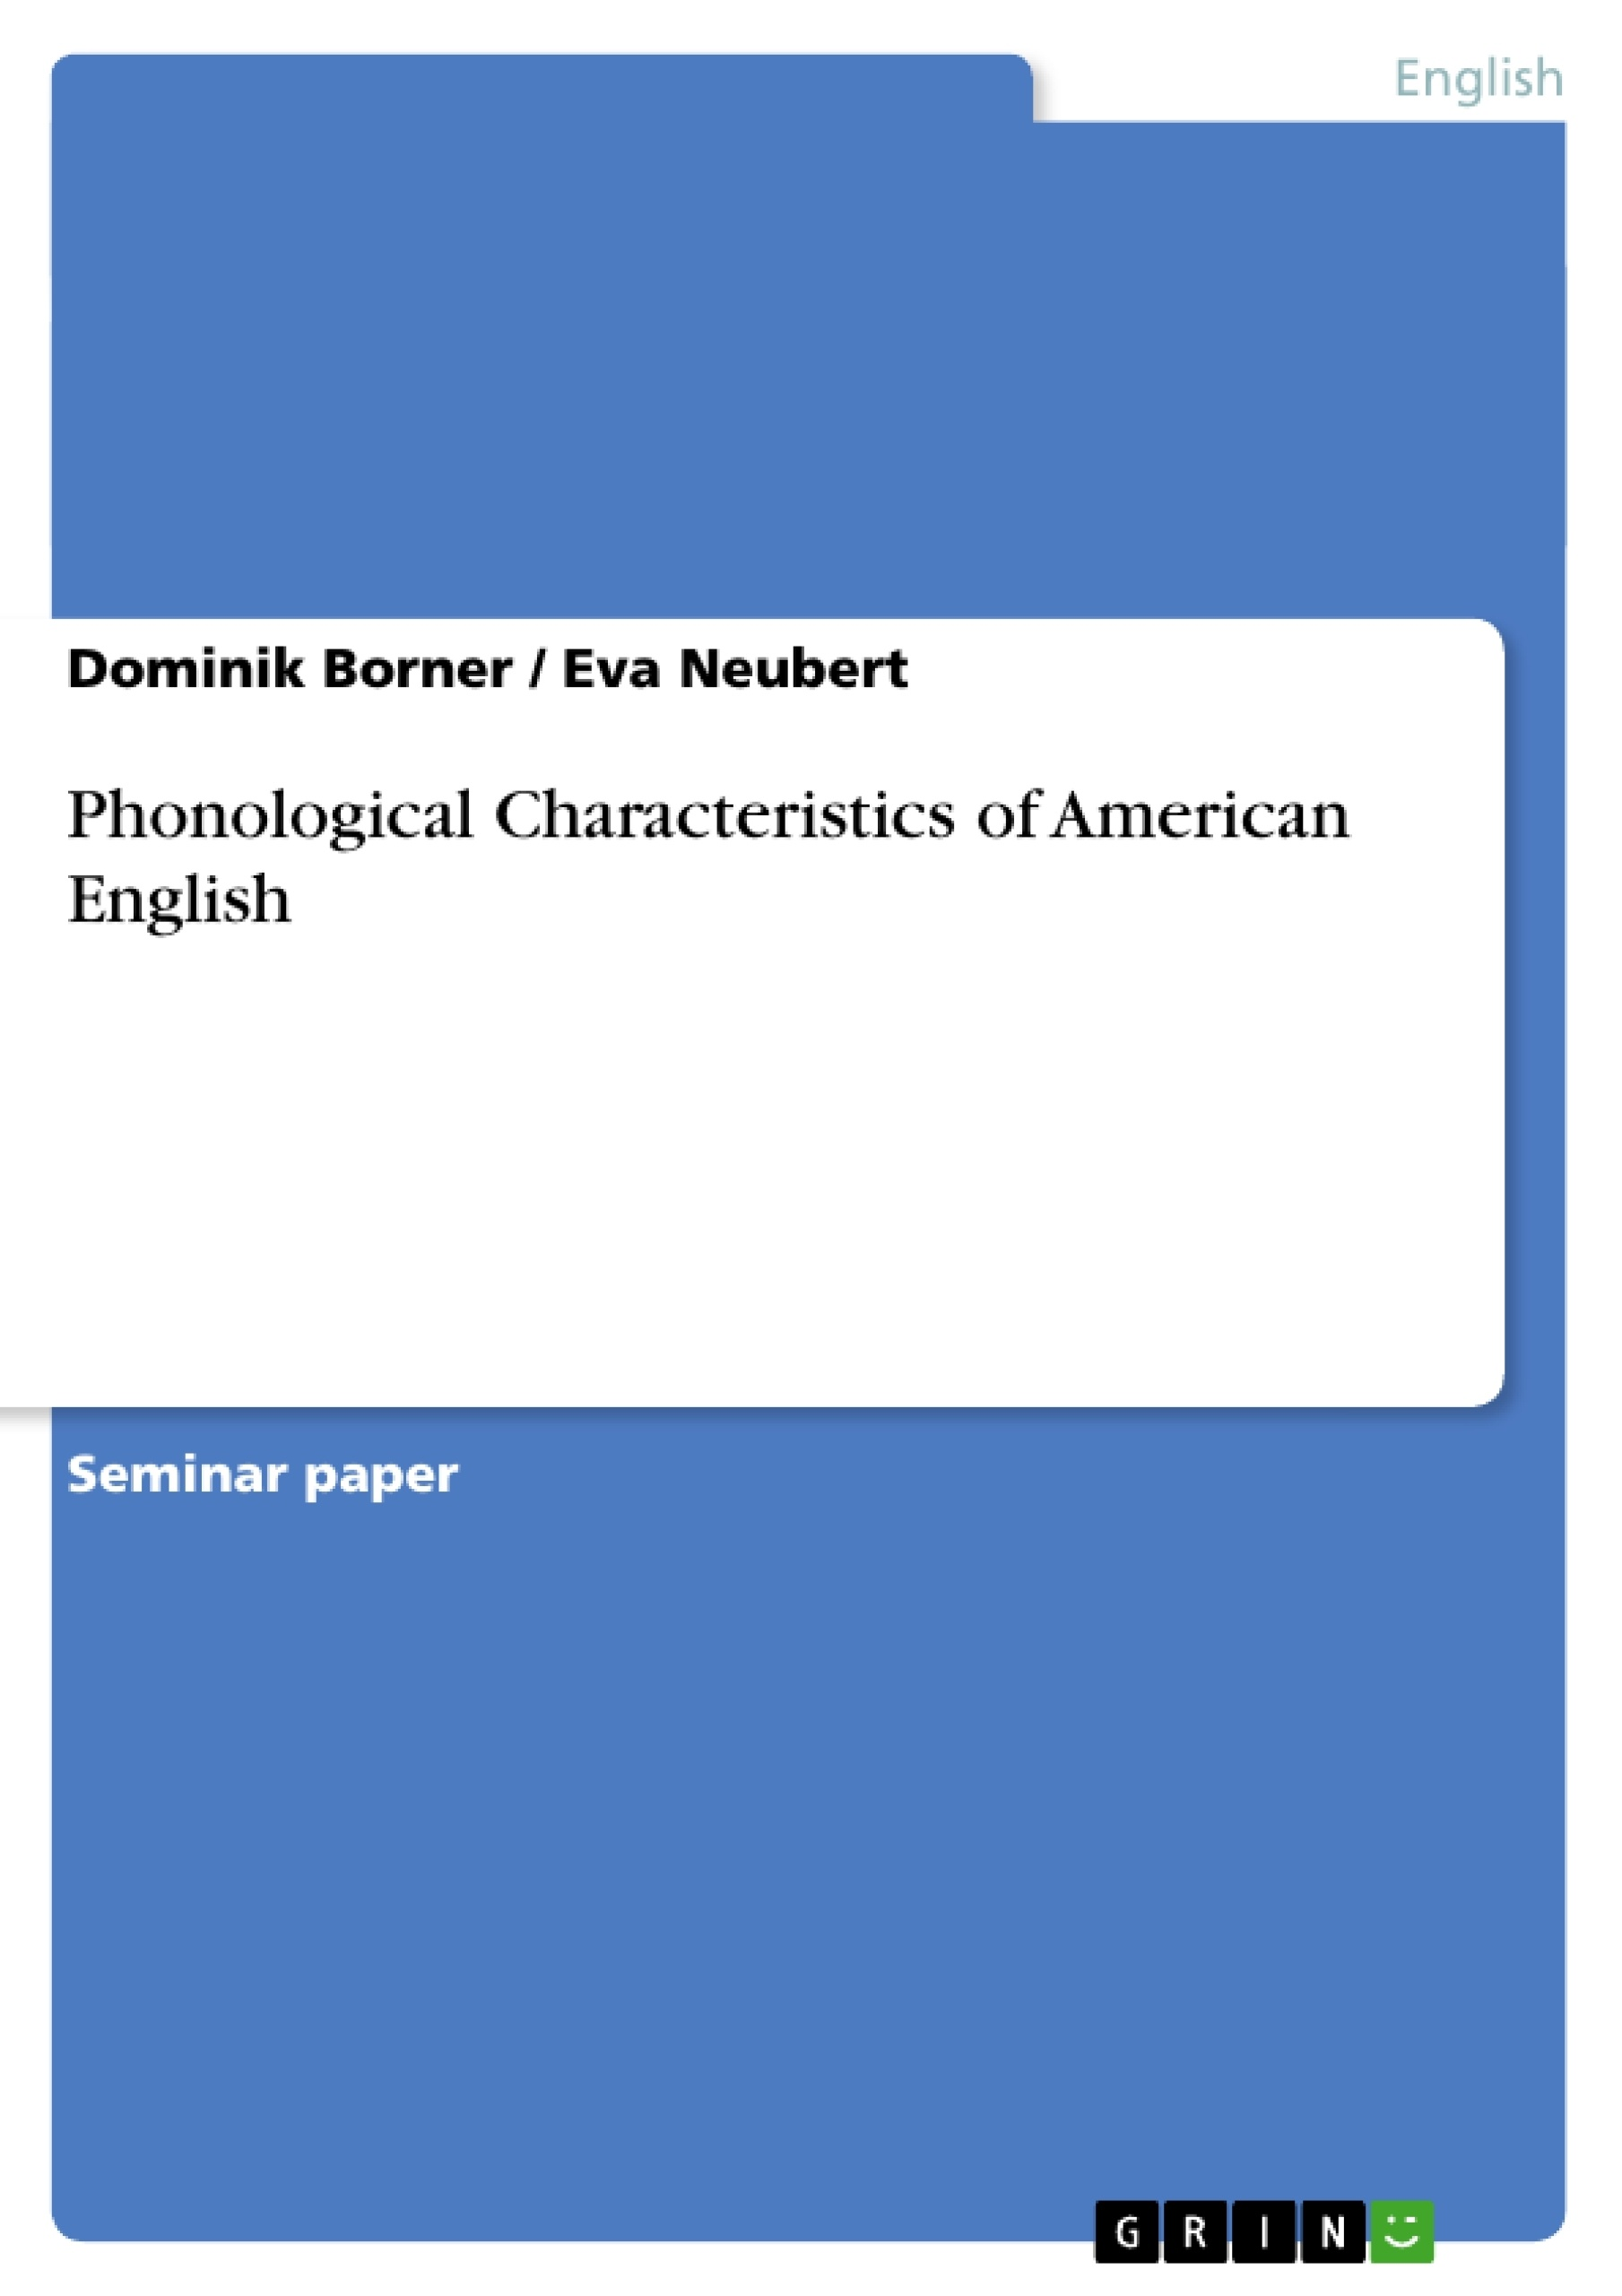 Title: Phonological Characteristics of American English